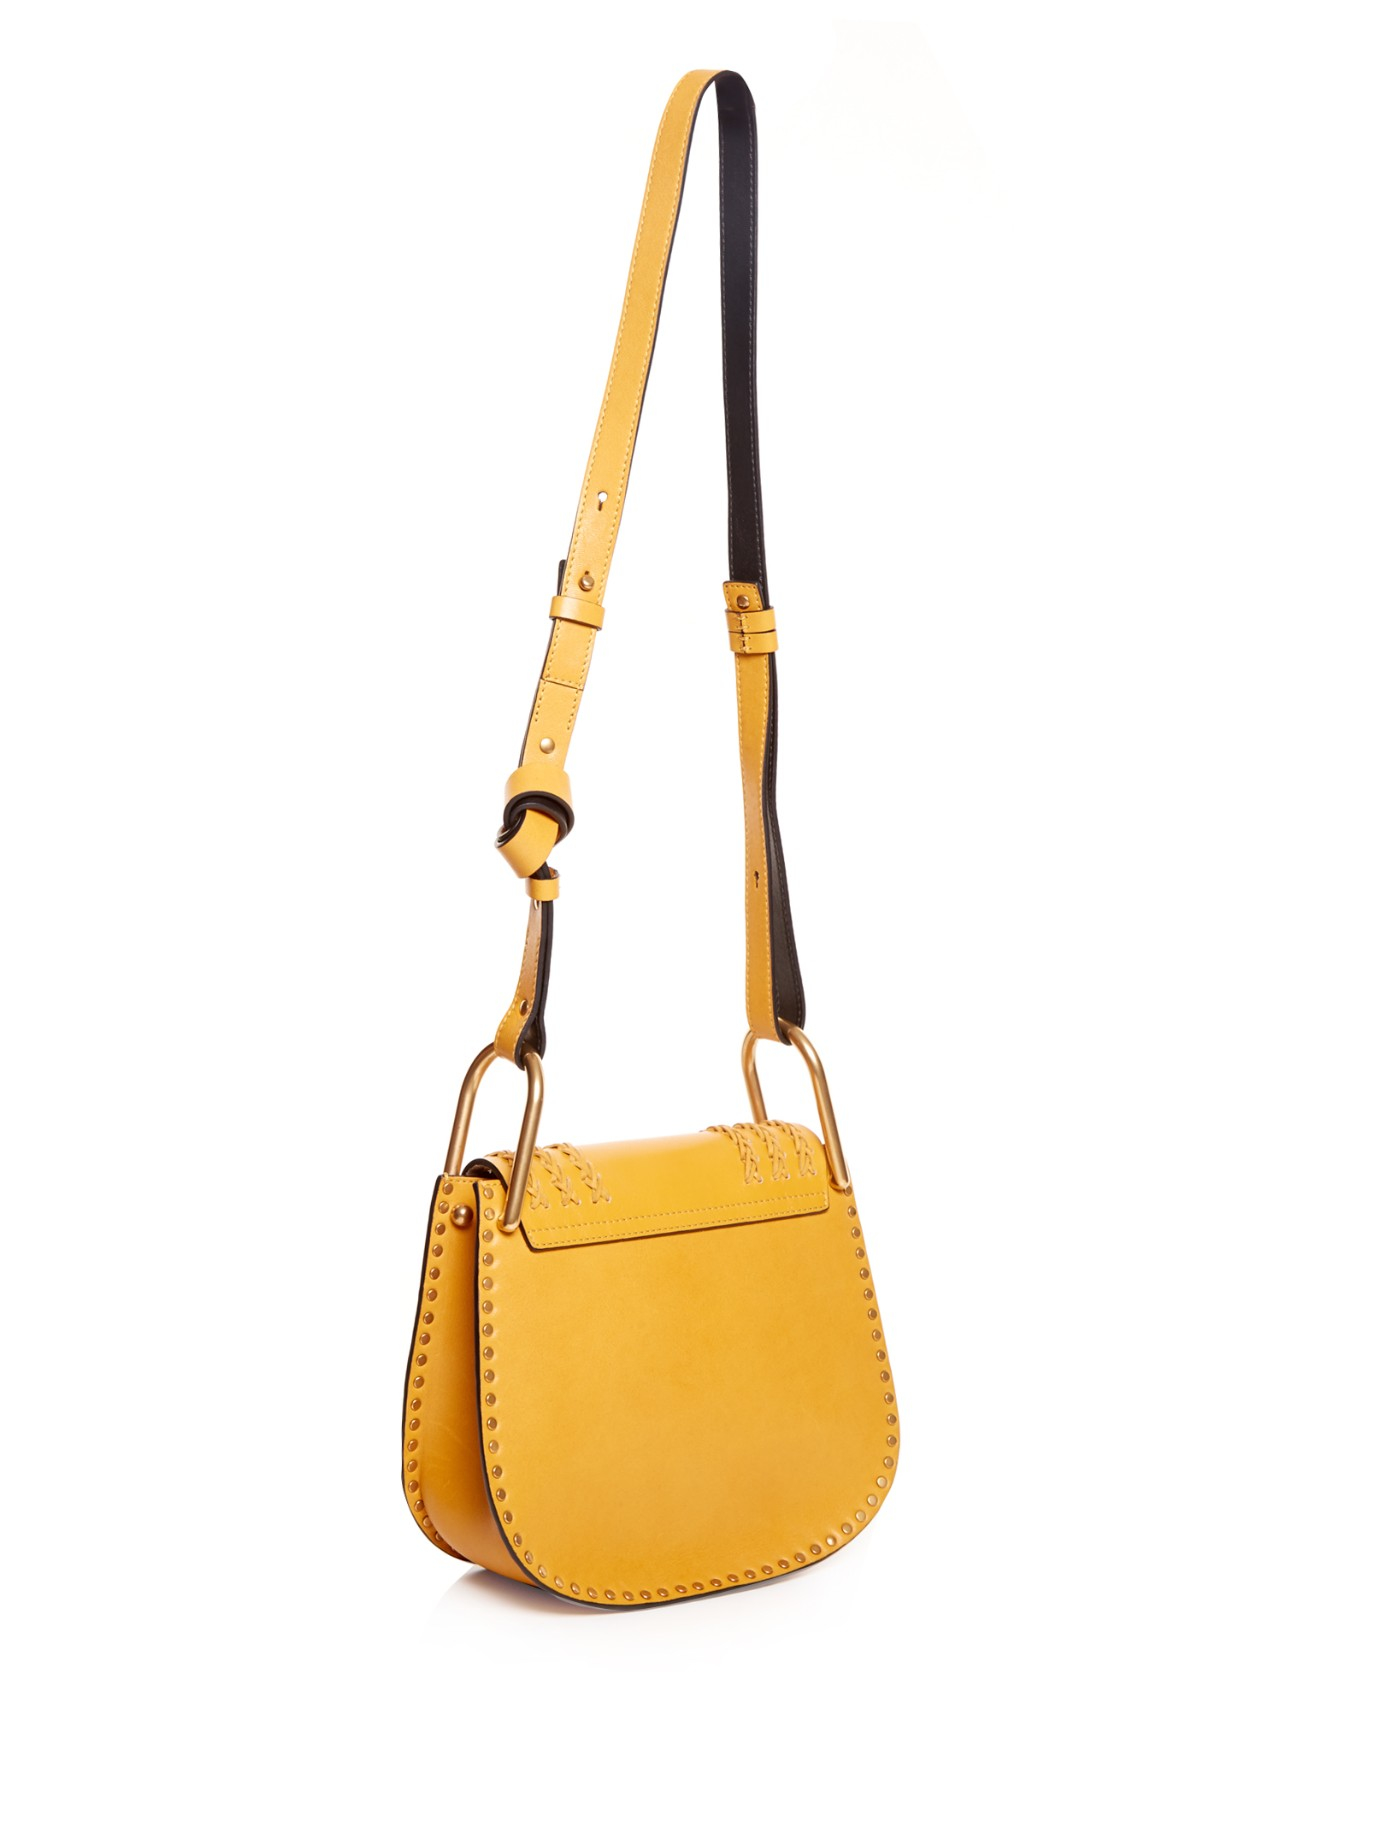 HUDSON BAG IN PERFORATED SMOOTH